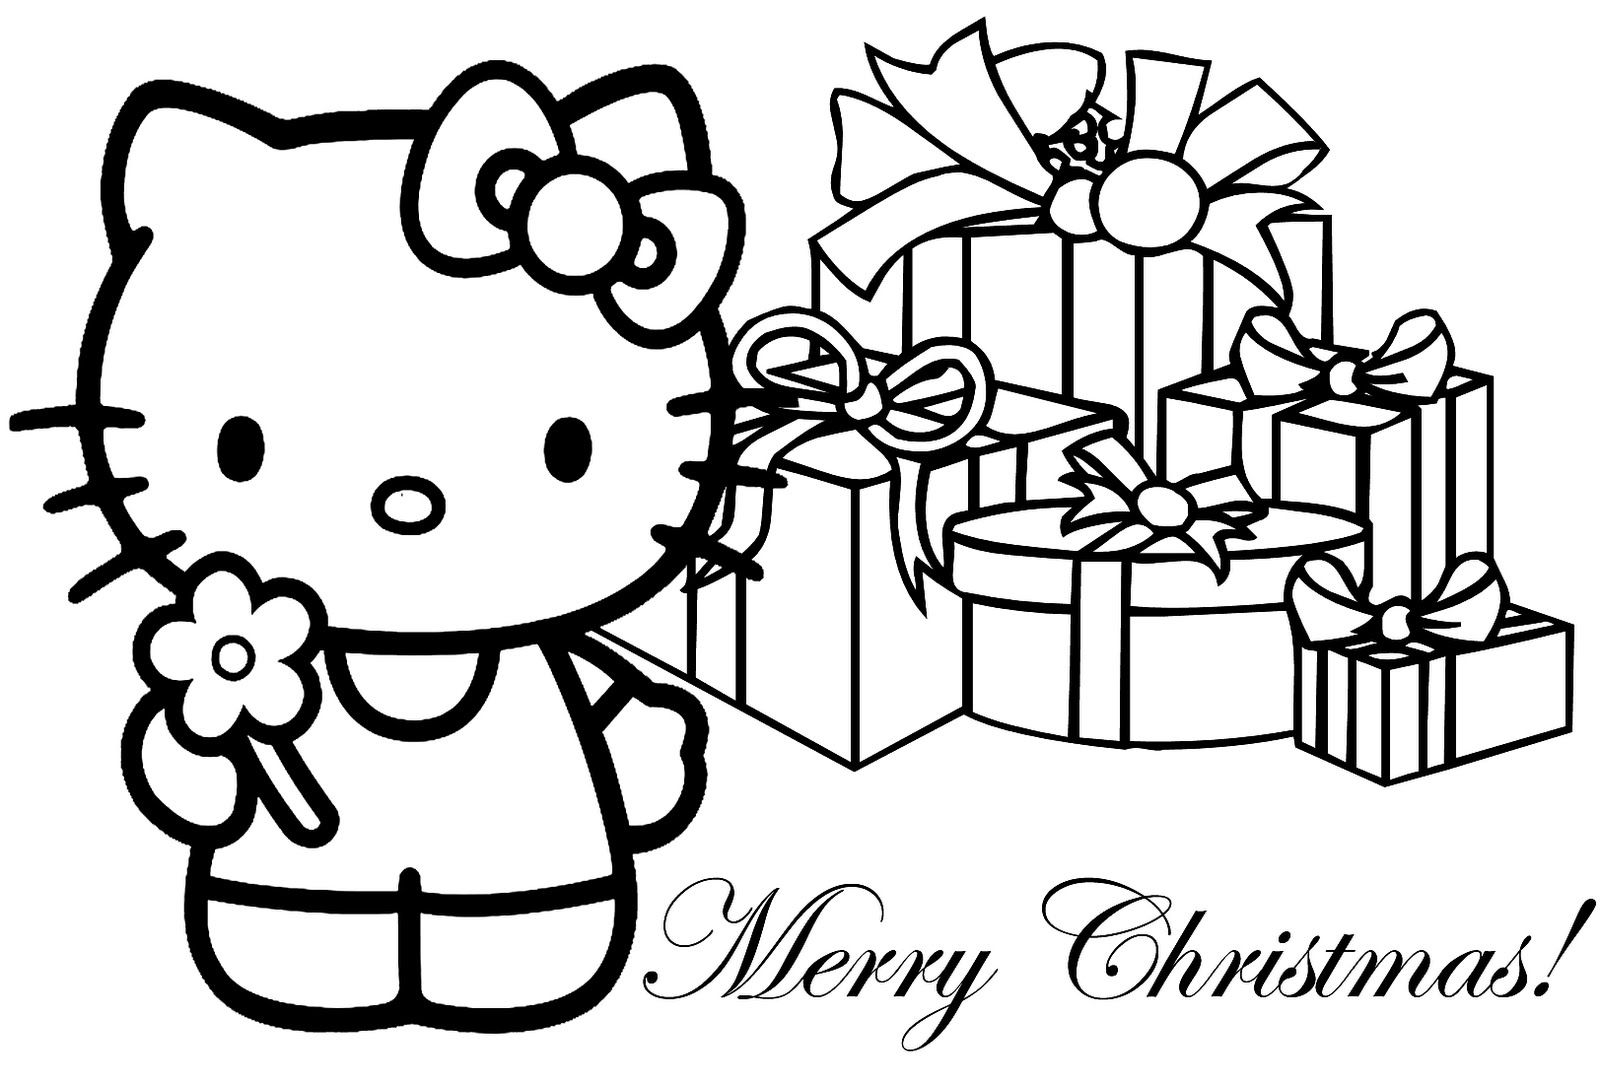 Adult Beauty Free Printable Christmas Coloring Pages For Kids Images top christmas hello kitty coloring pages for kids printable free 1000 images about on pinterest gallery images